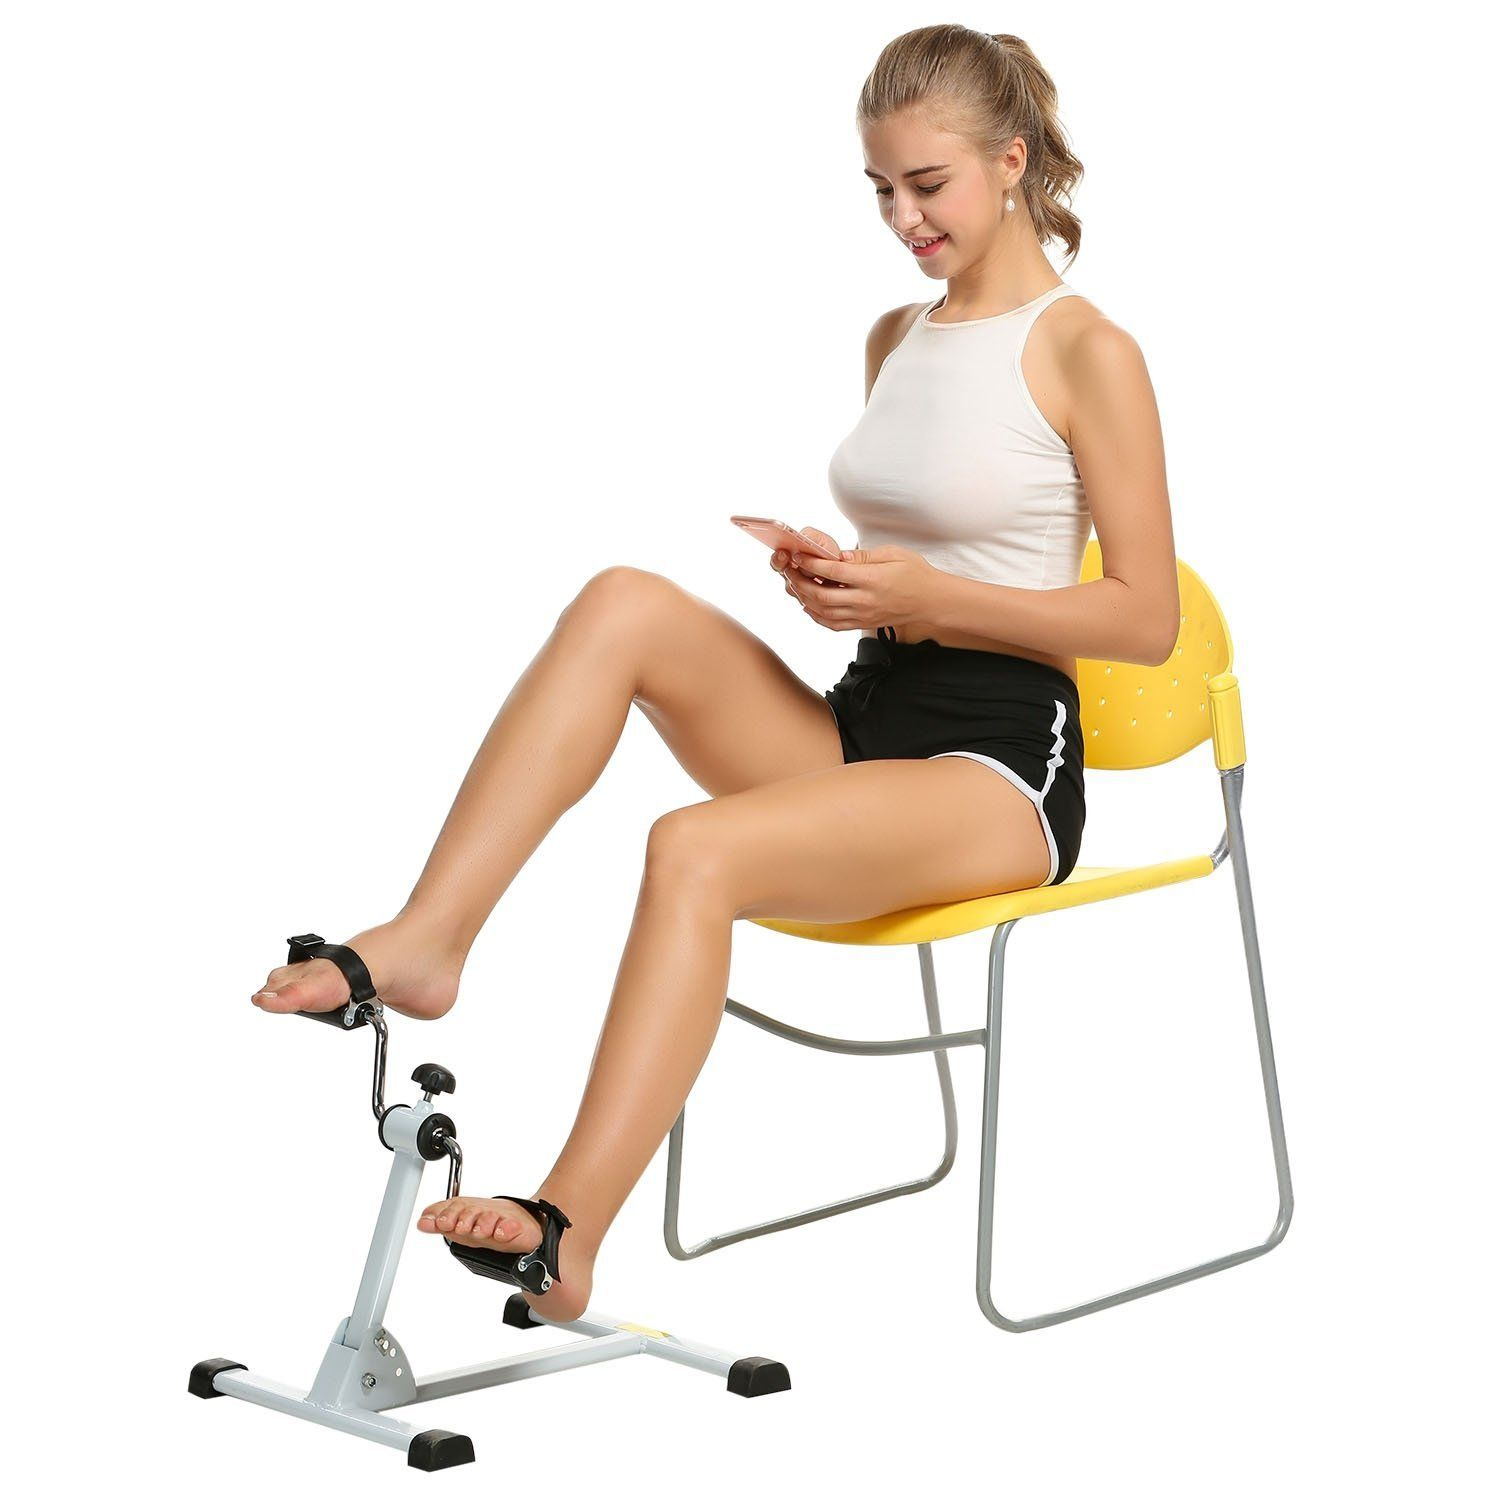 Ancheer Mini Exercise Bike Arm And Leg Pedal Exerciser Special